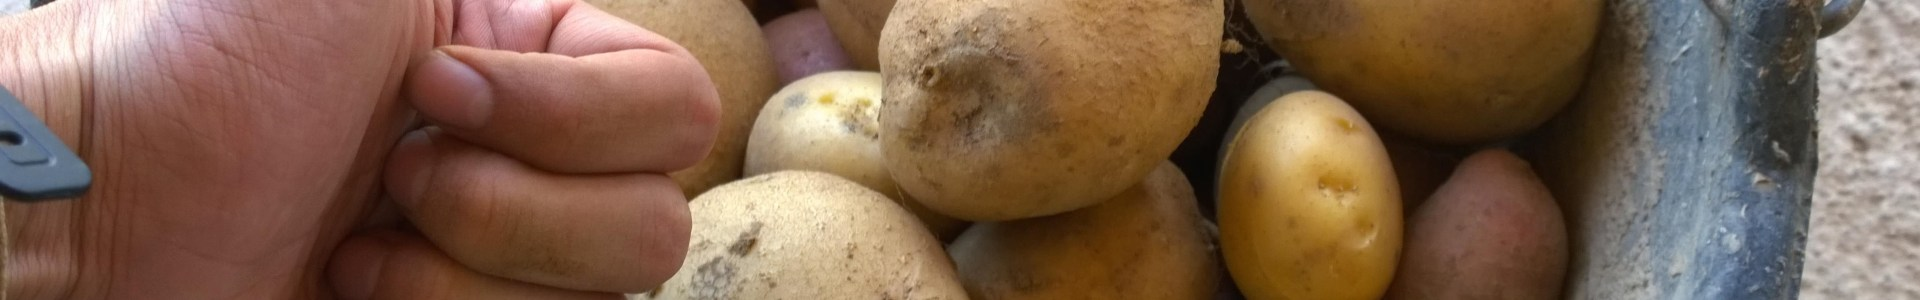 The Lowly Potatoe Gets Picked on Again